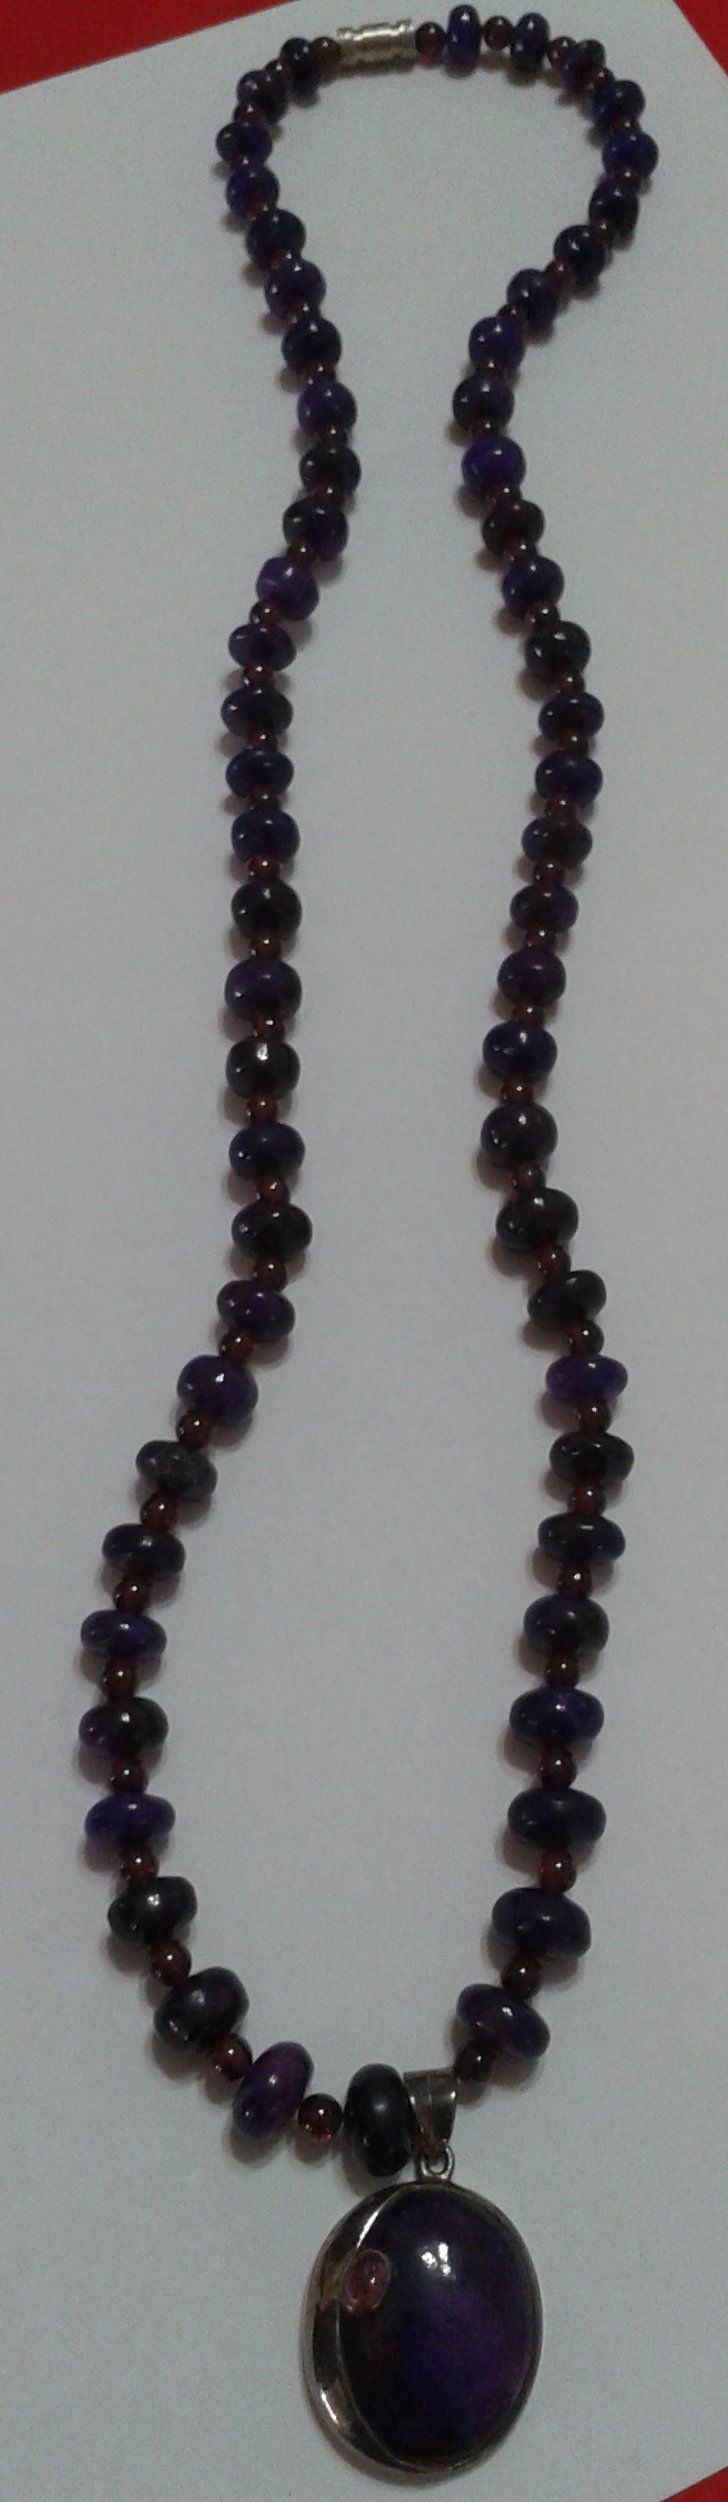 Colite Sapphires – Maroon Necklace - Beautiful long maroon colour crystals necklace to match fashionable clothing.